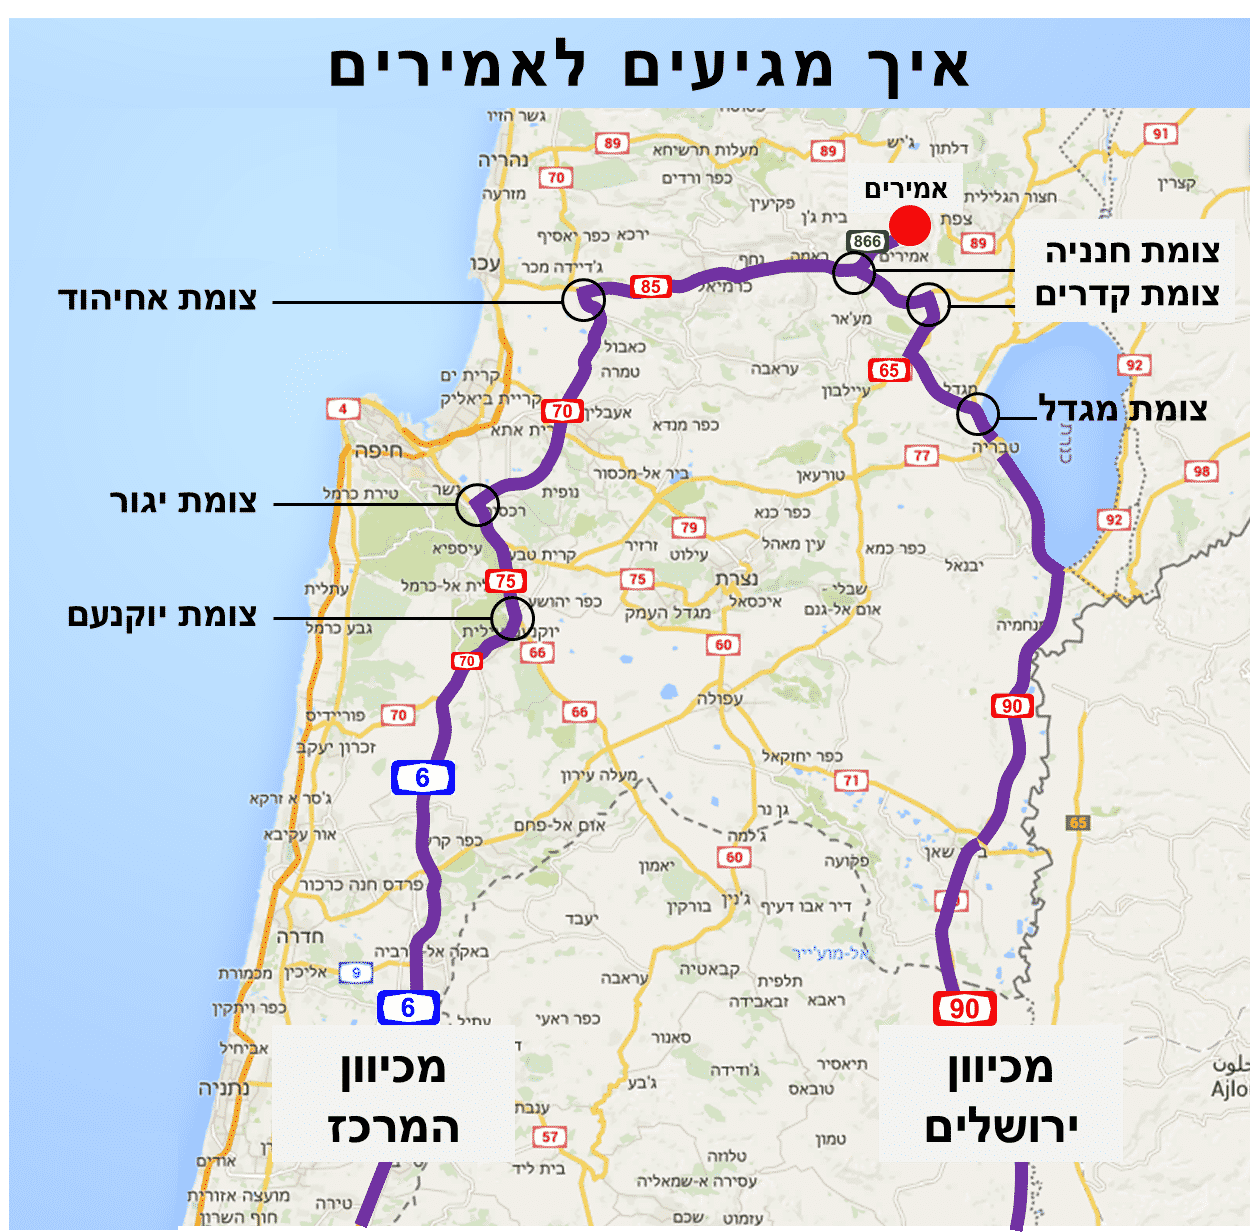 How to get to Amirim Upper Galilee